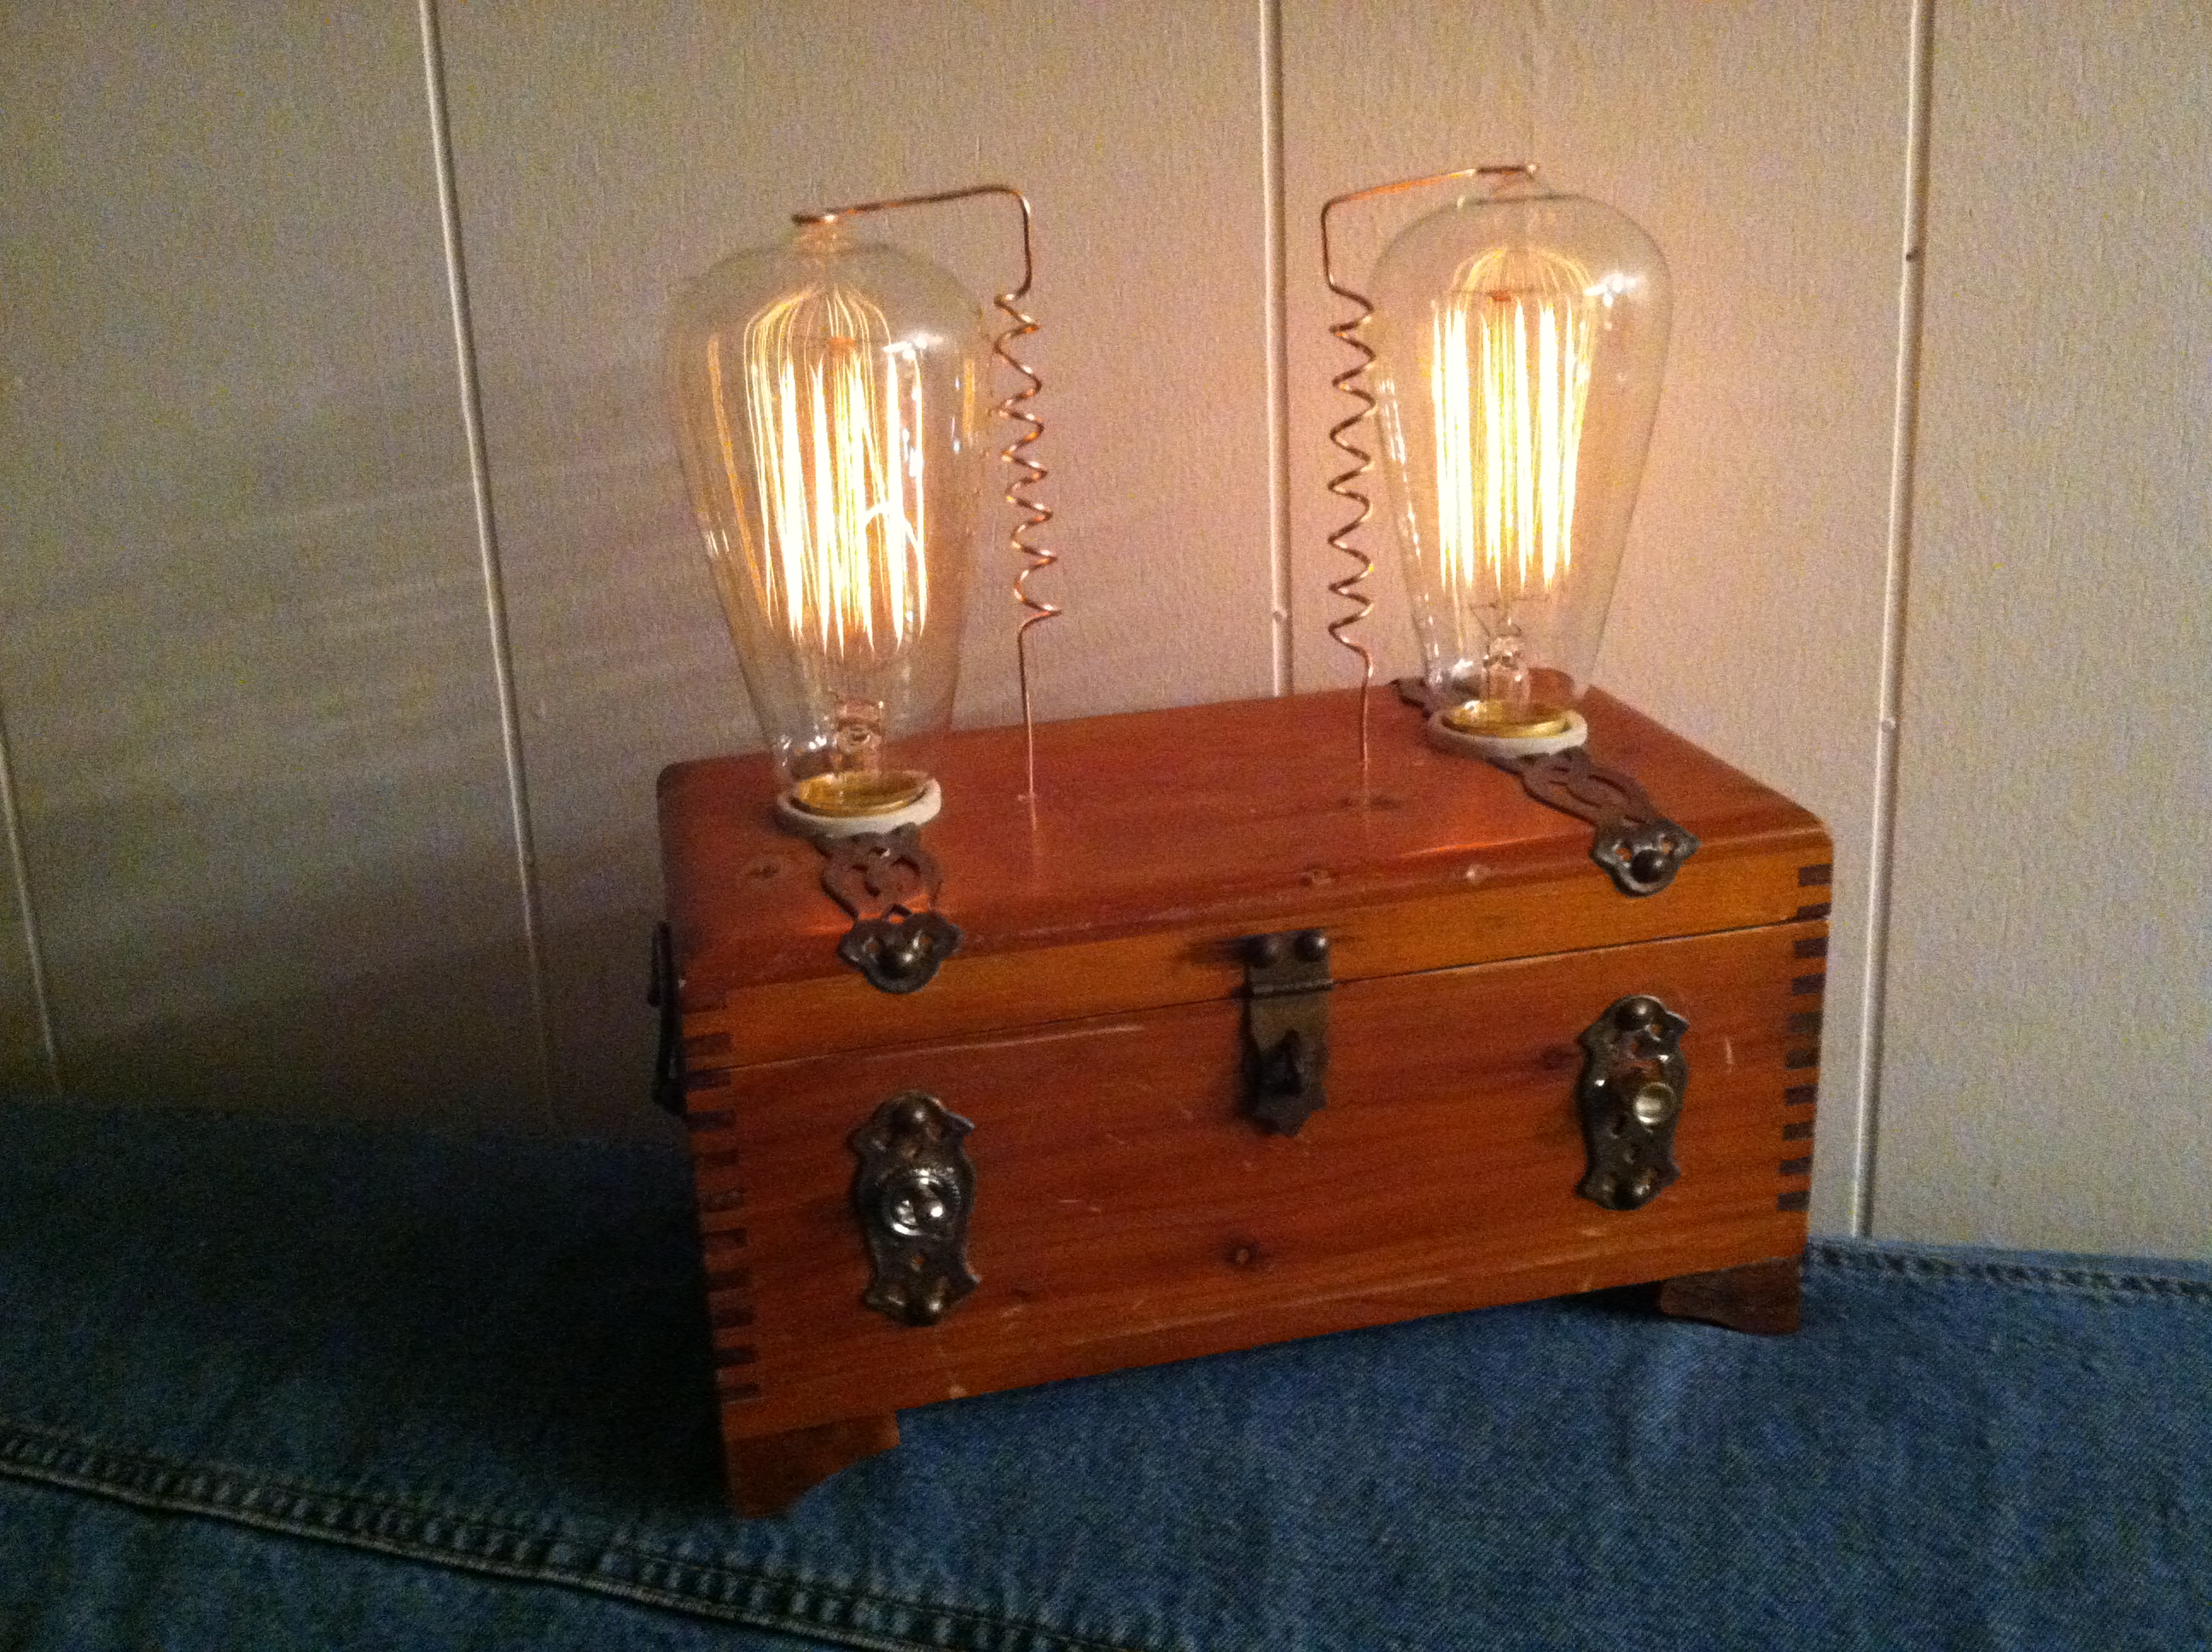 The Alva Dimmable Chamber Lamp